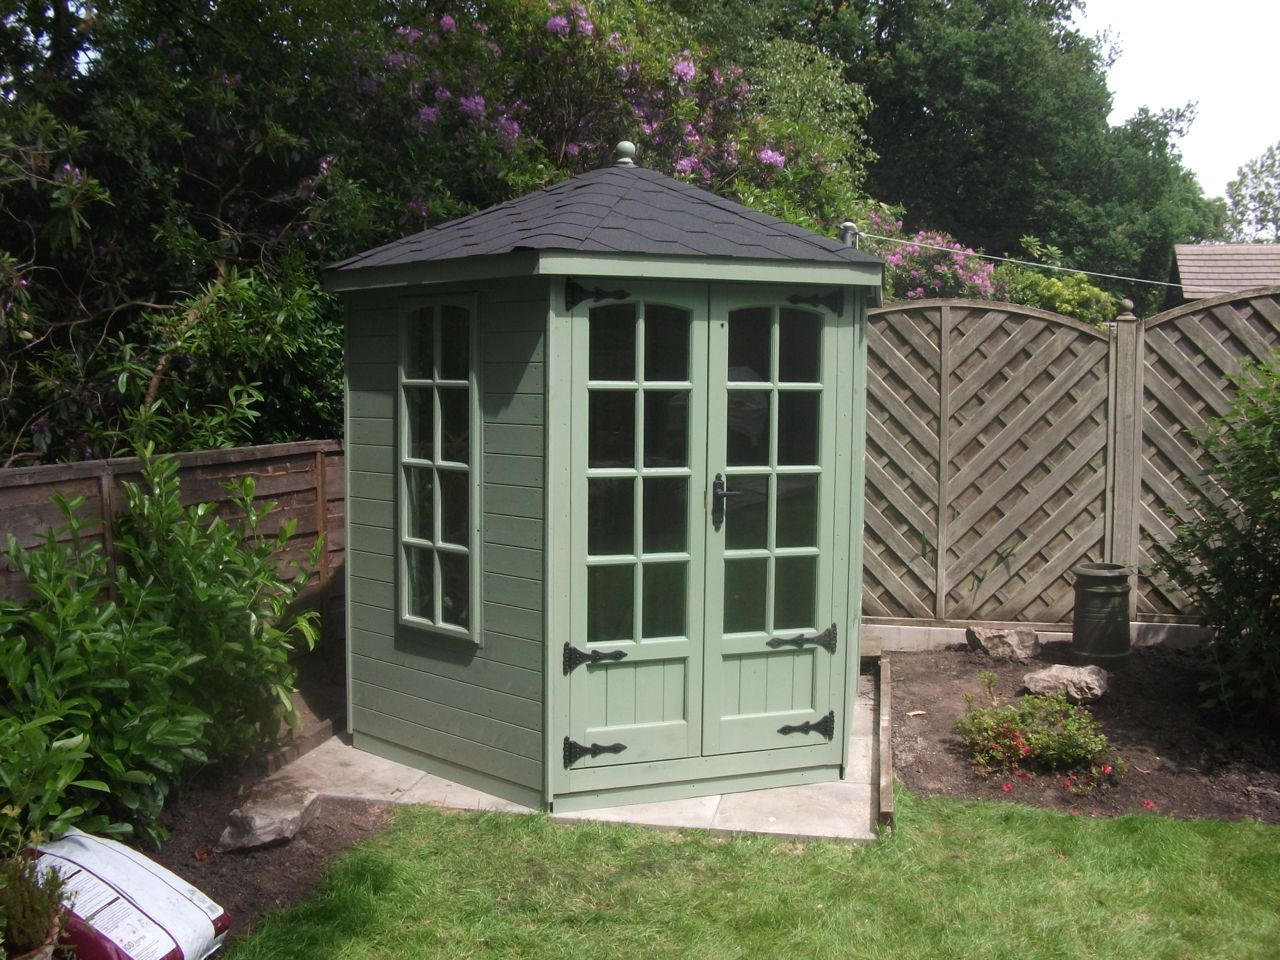 SIX SIDED SUMMERHOUSE